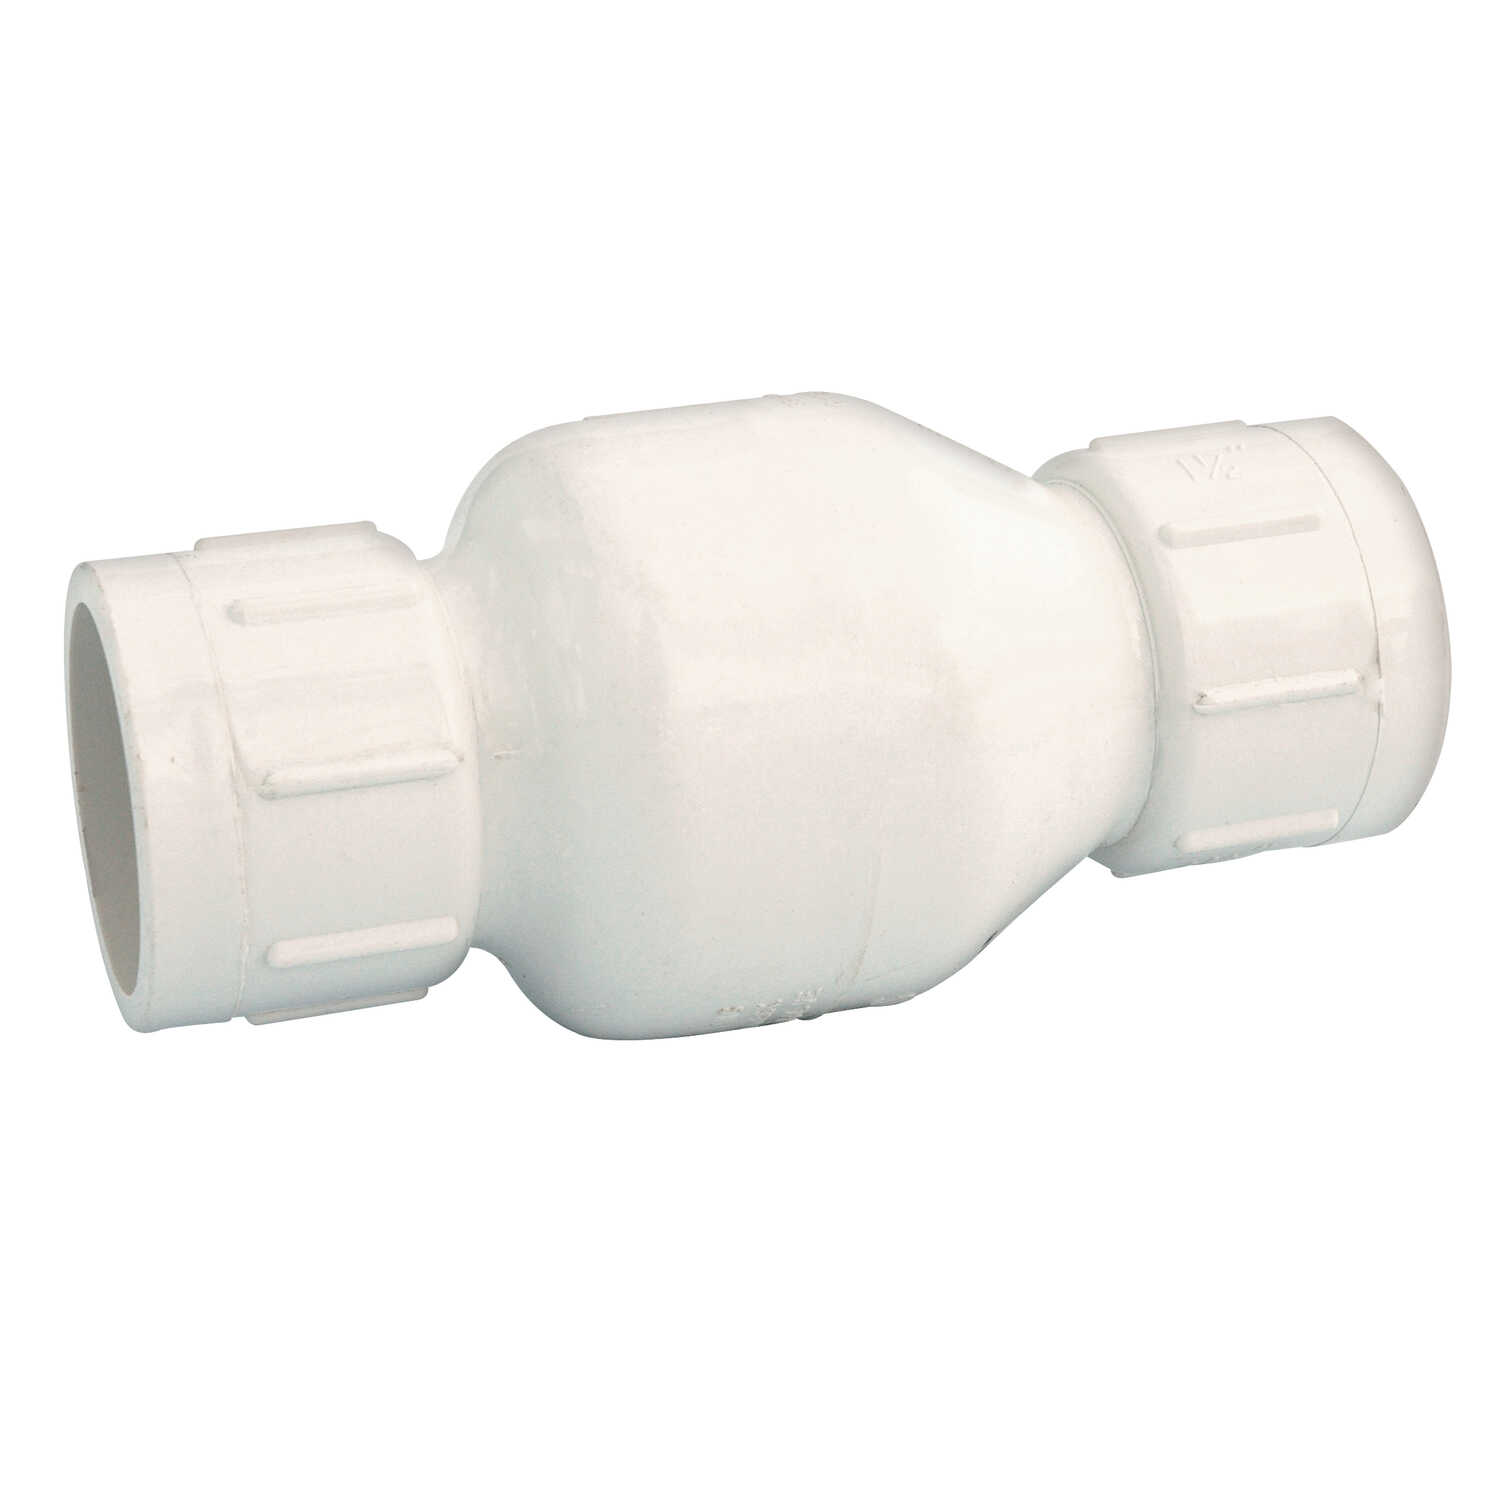 NDS  2 in. FIPT X 2 in. FIPT  PVC  Spring Loaded  Check Valve